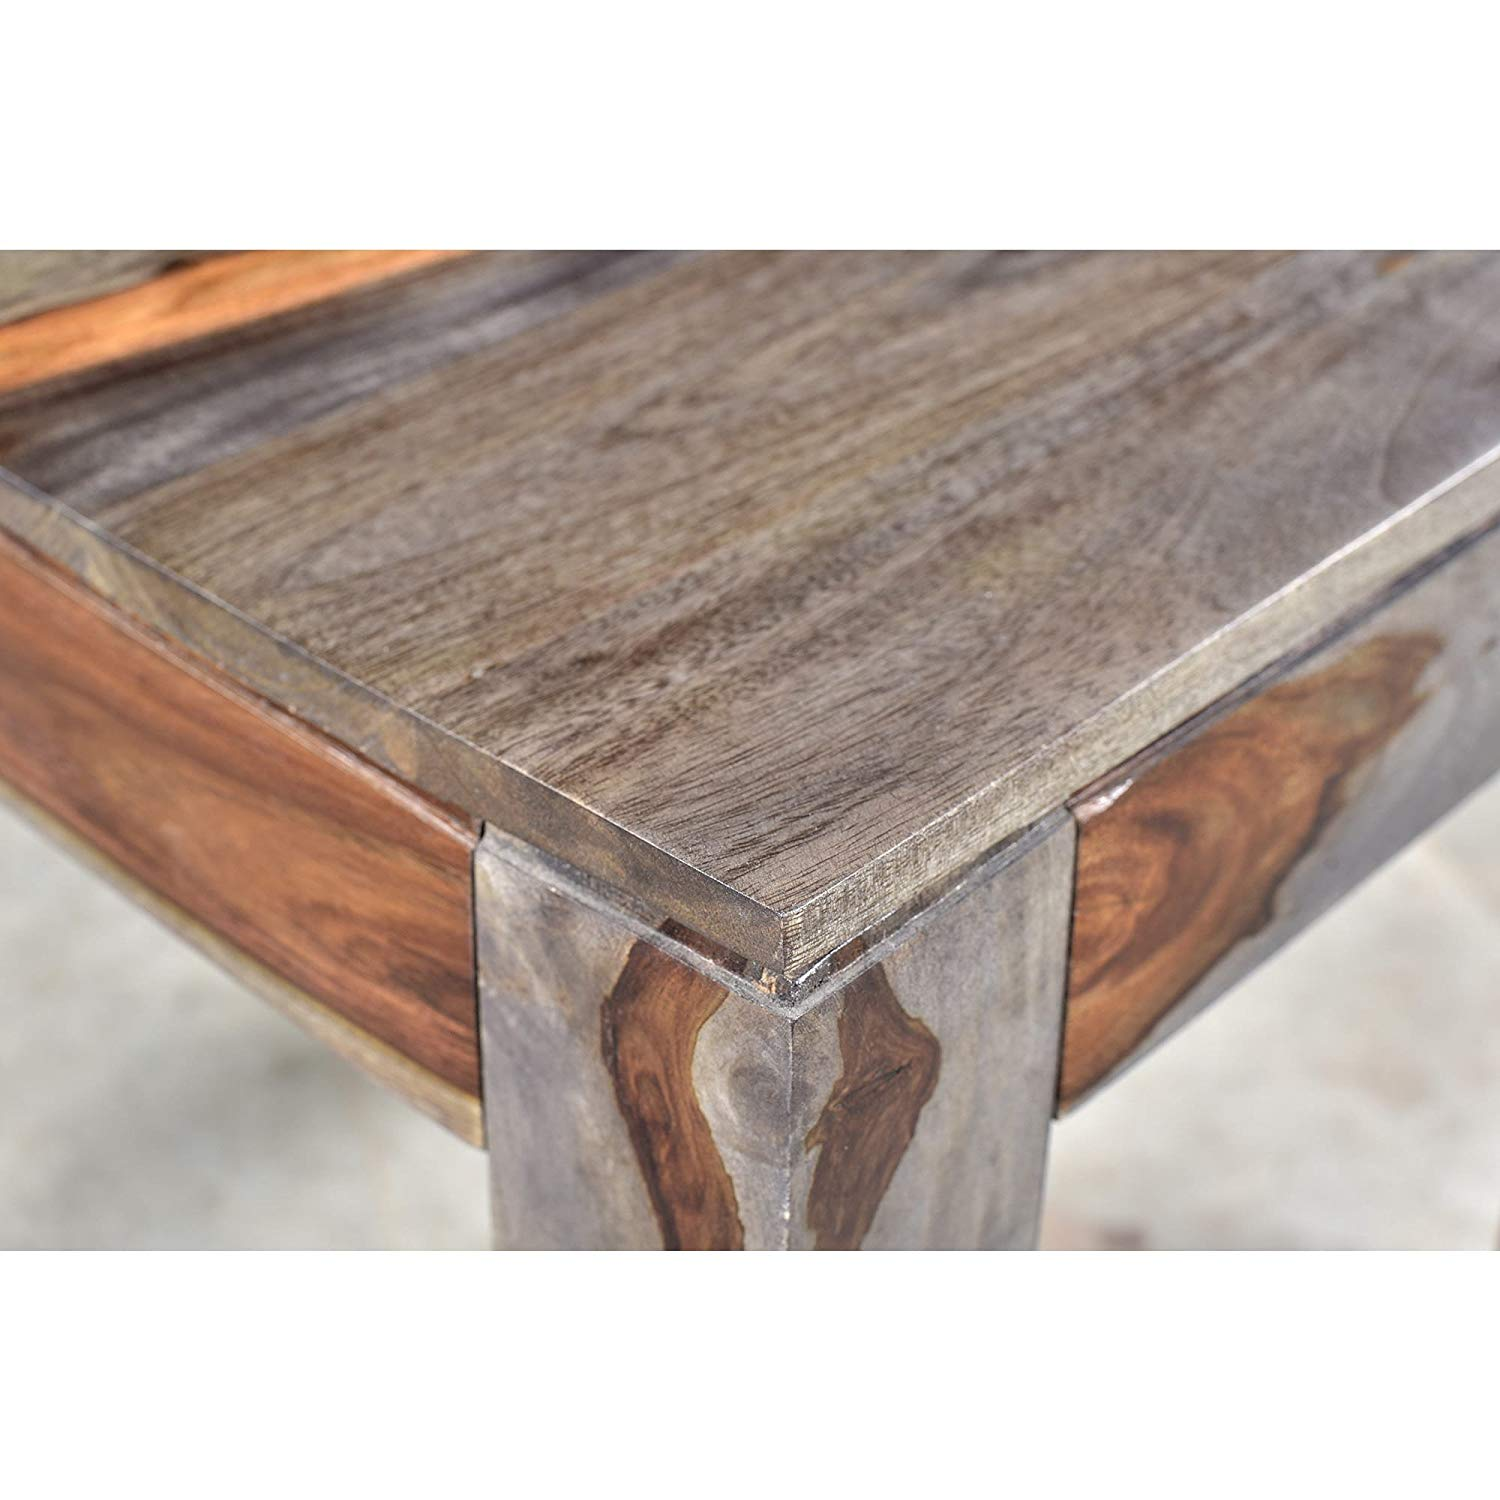 worldwide homefurnishings inc idiris grey coffee table winsome wood cassie accent with glass top cappuccino finish kitchen dining sasha round linen cloth outdoor beach decor